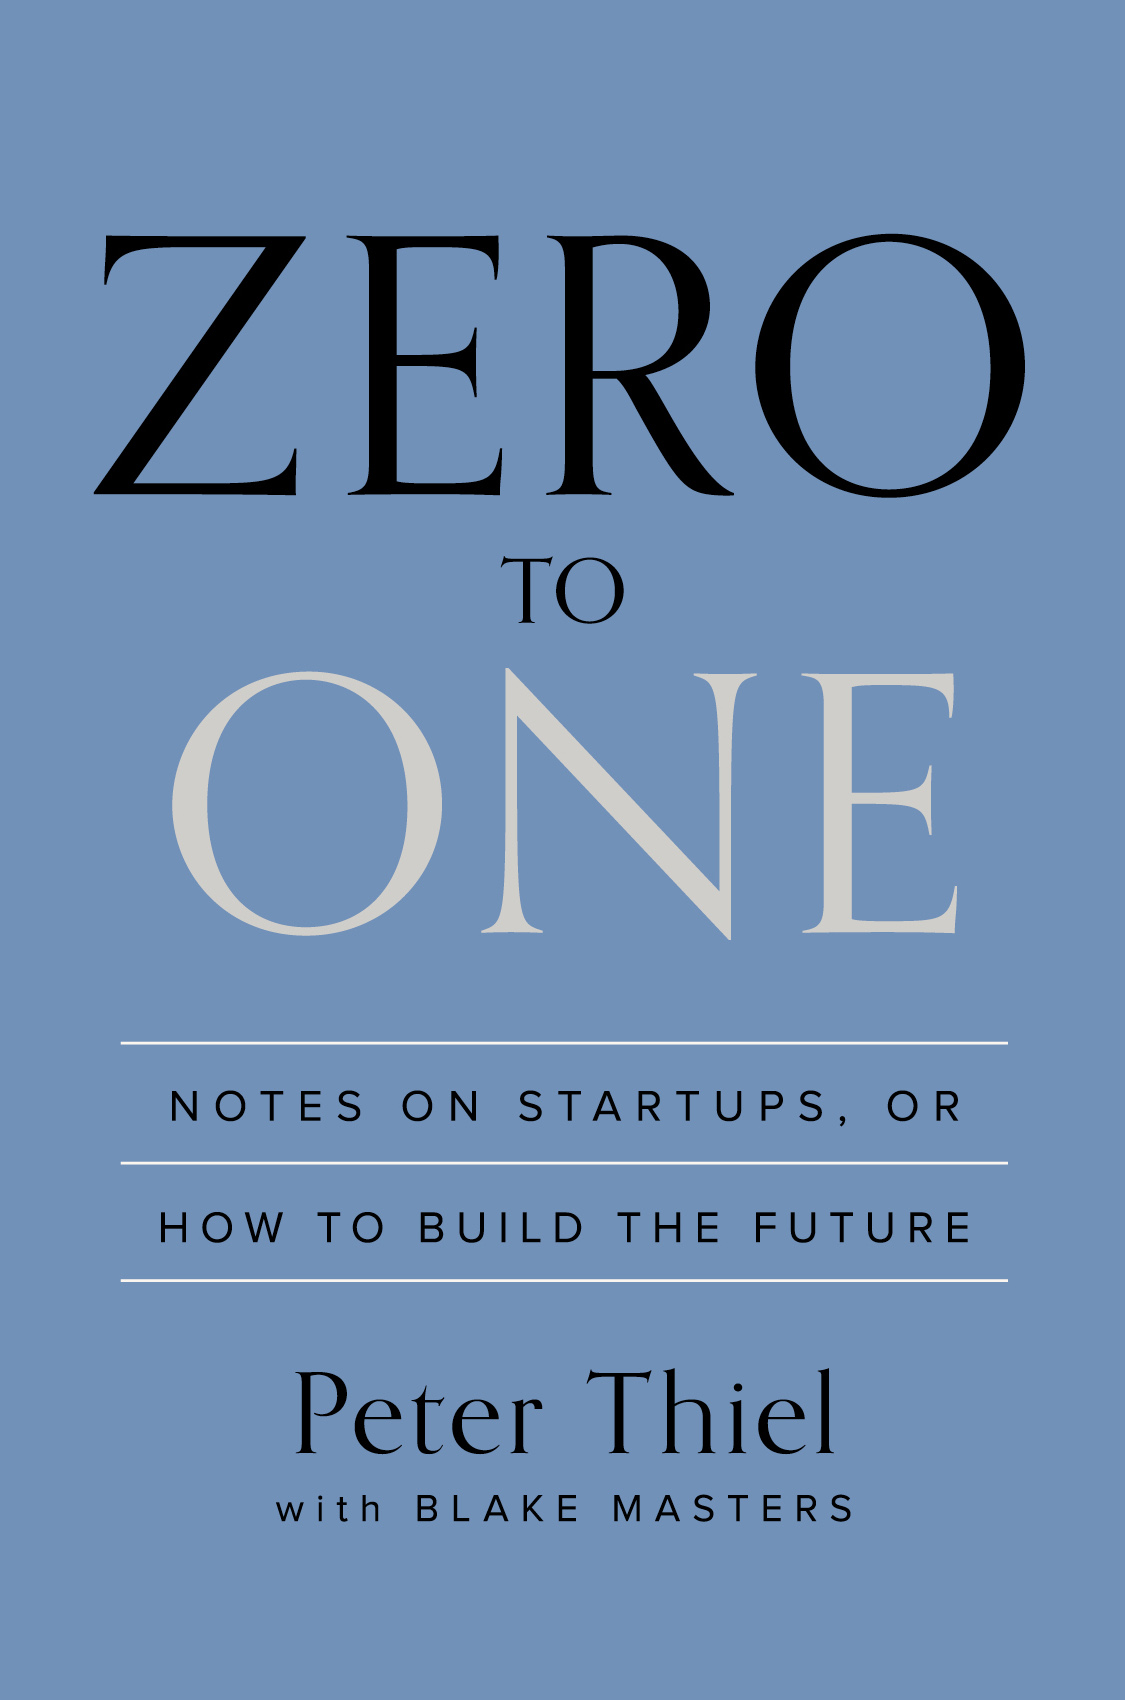 ZERO TO ONE, BY PETER THIEL, turbomind Book Summary by Miguel De La Fuente